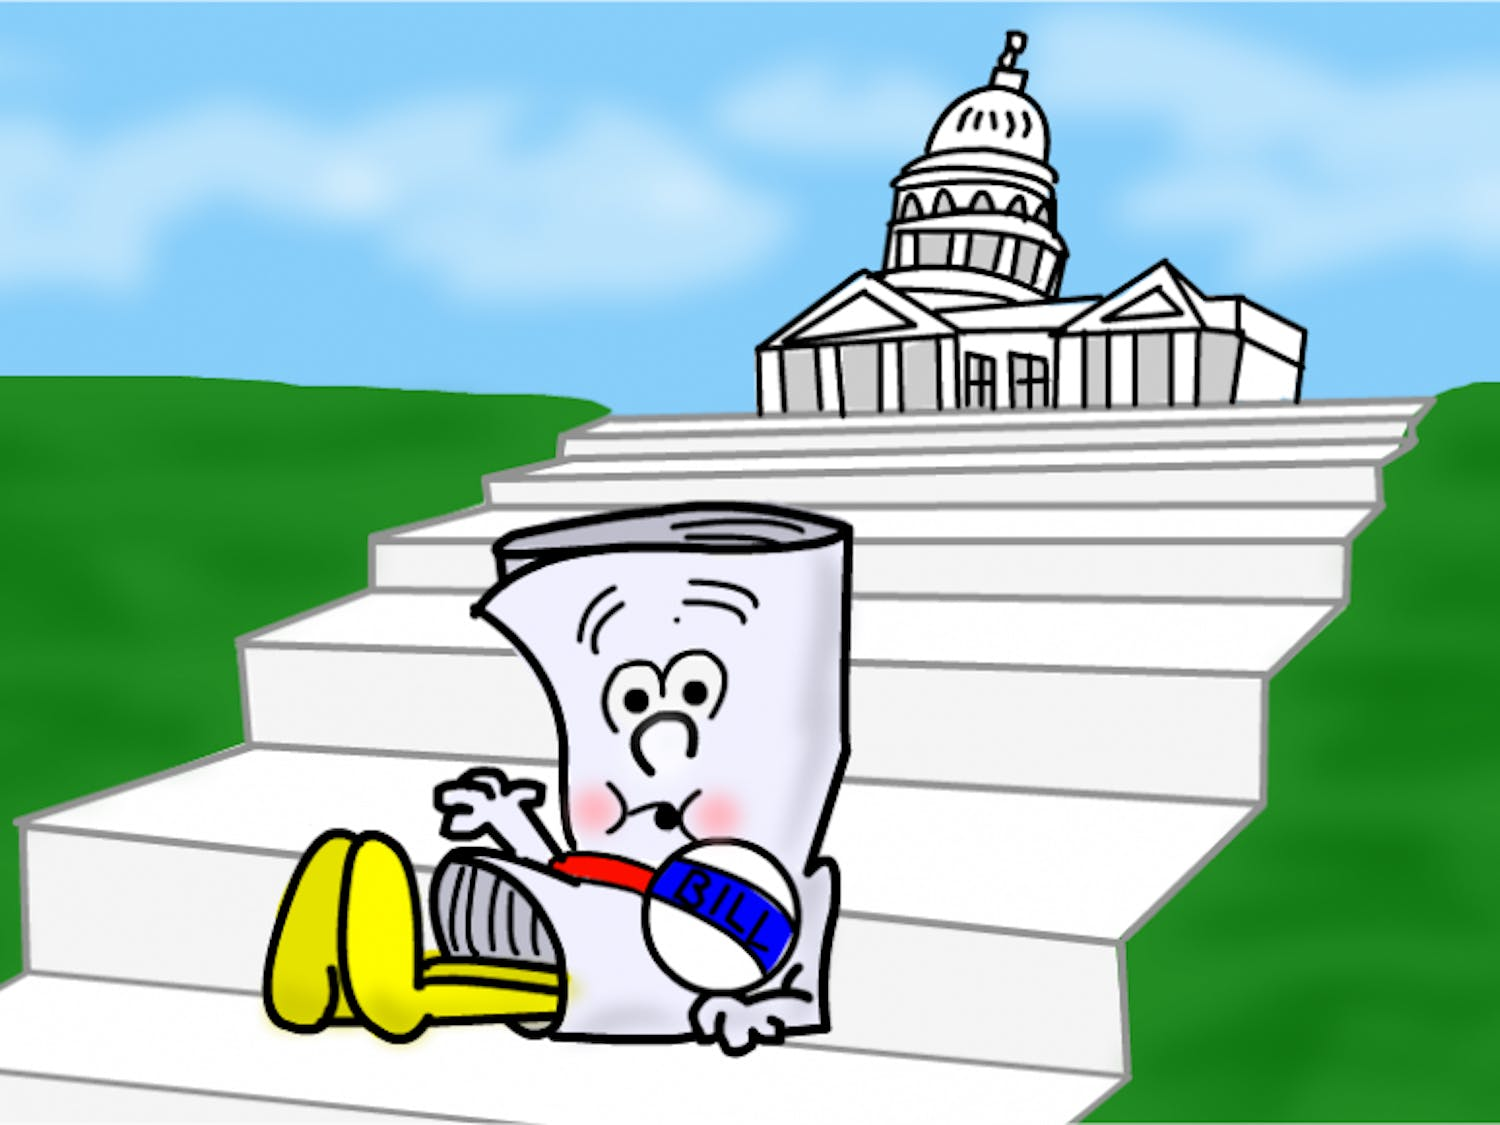 This is a bill. He is only a bill. And he's sitting up on Capitol Hill.